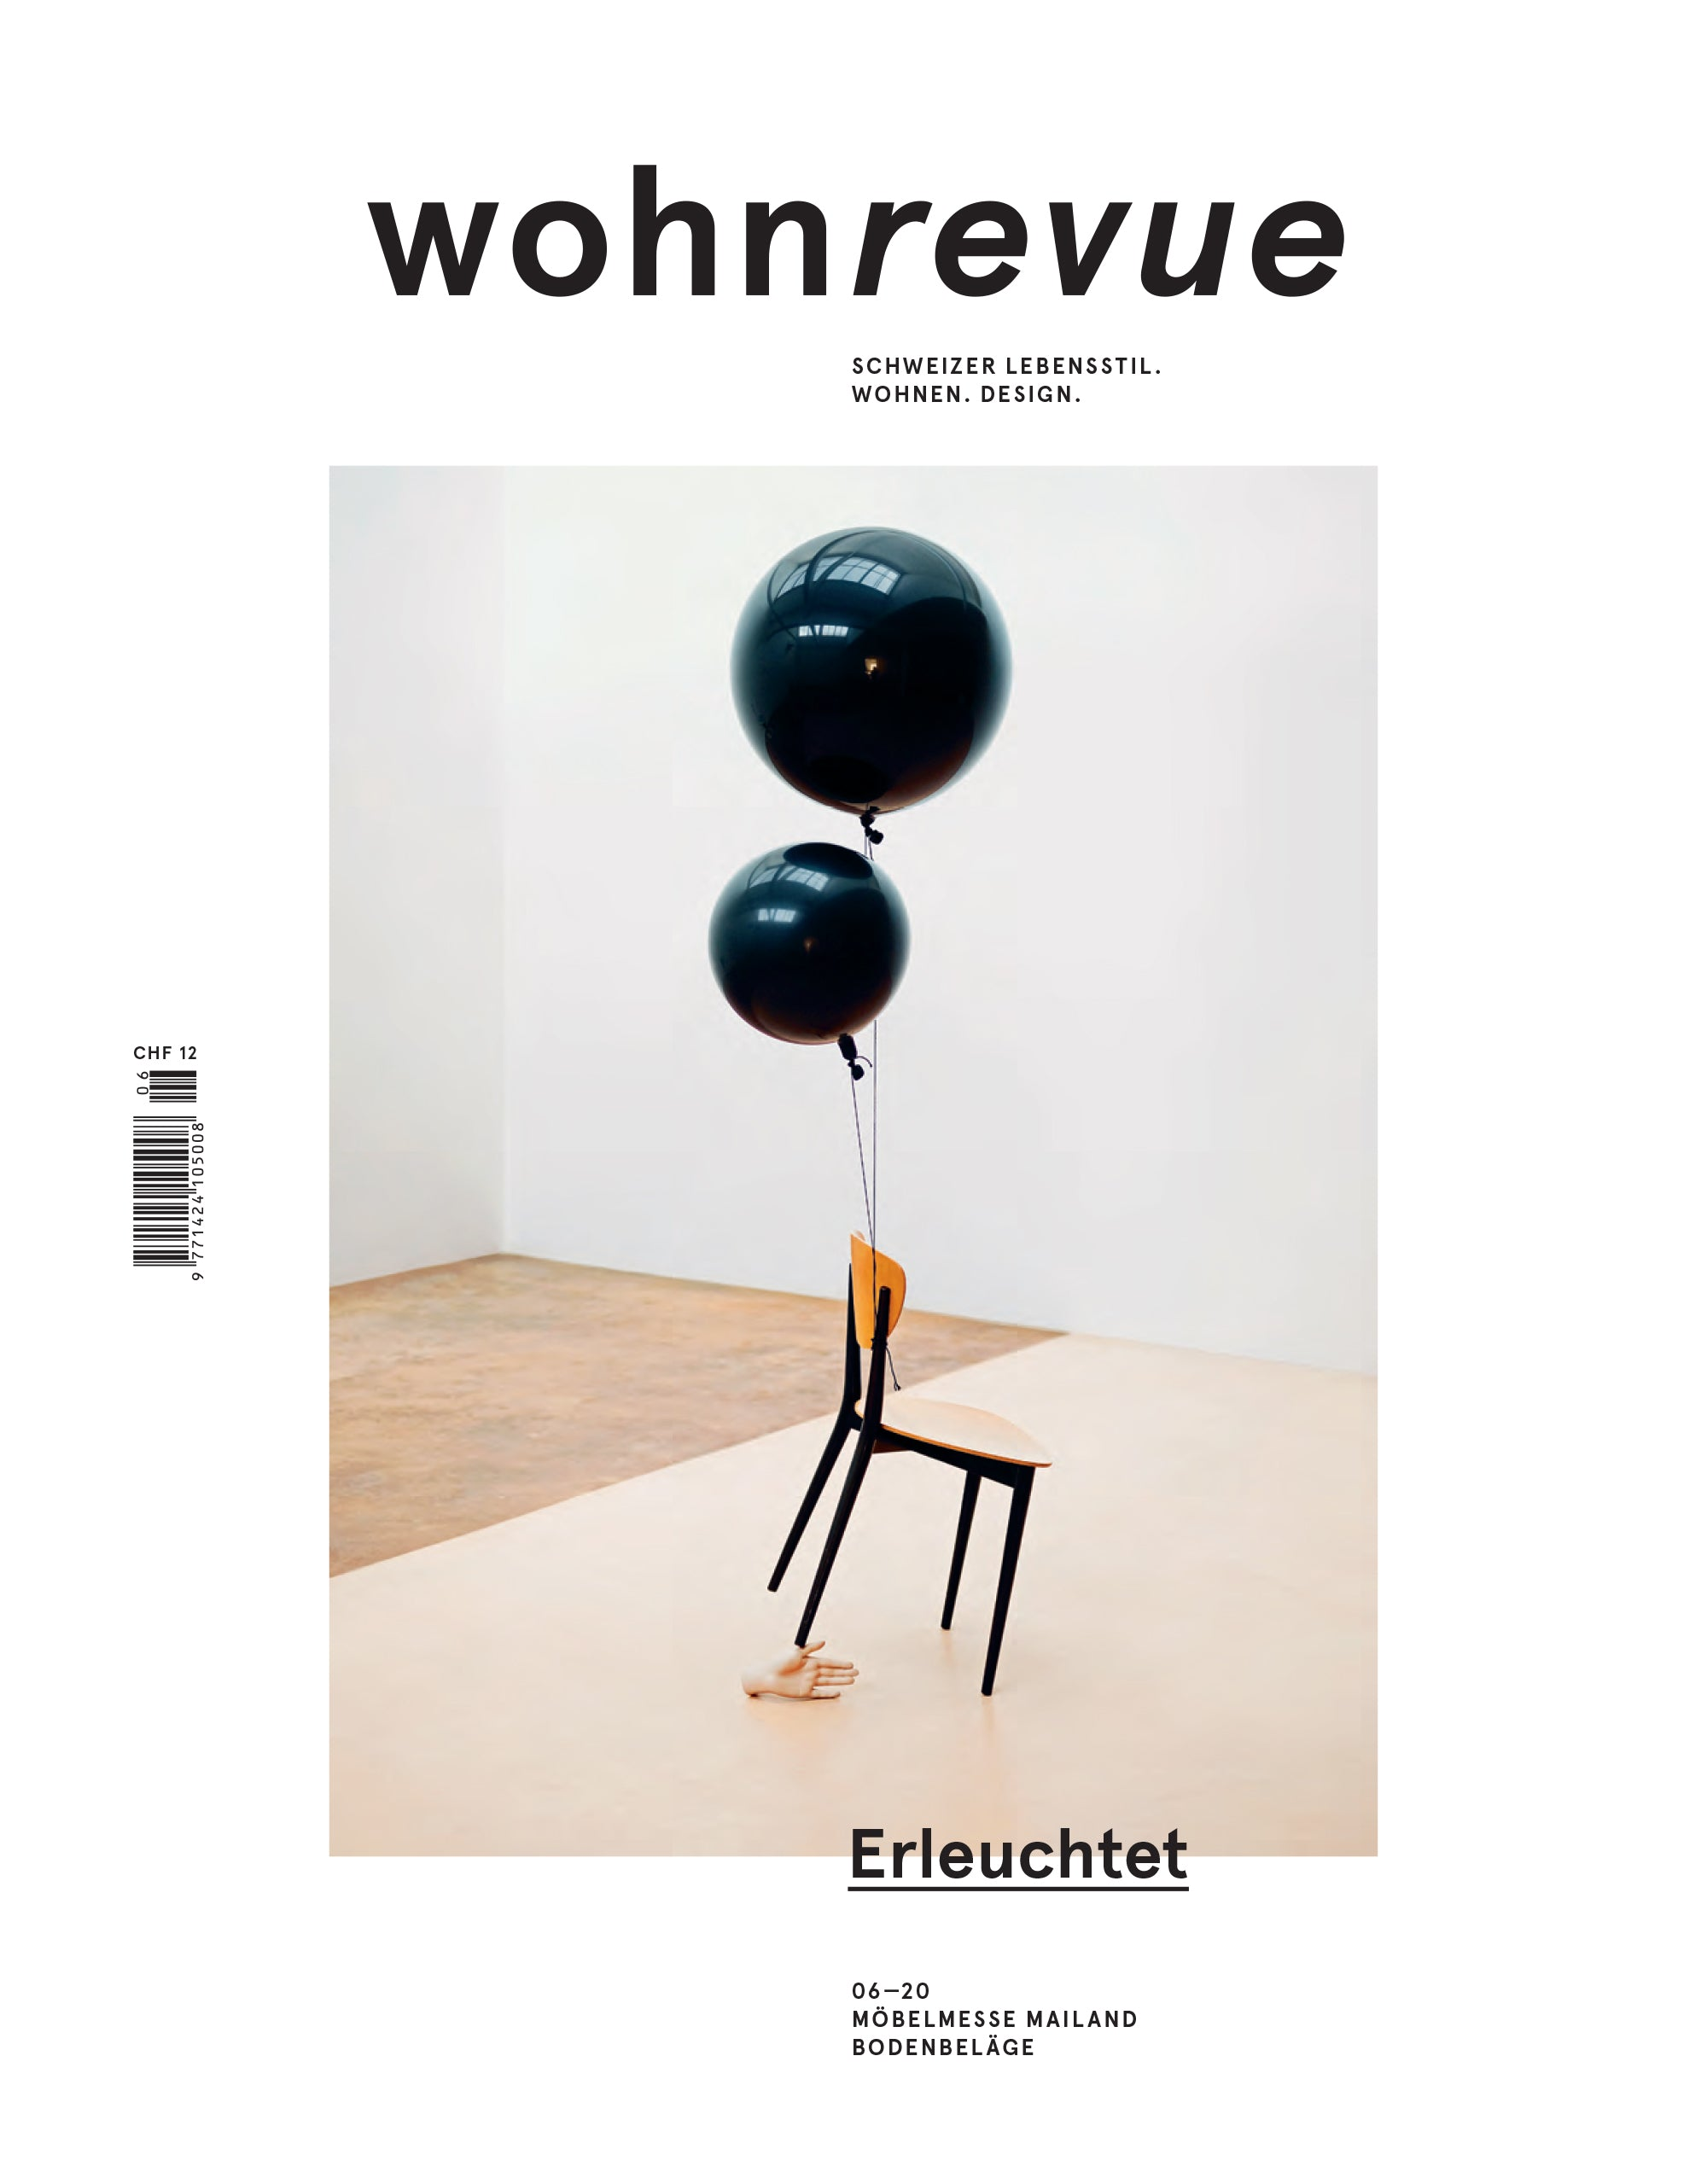 Wohnrevue: Tradition modern interpretiert